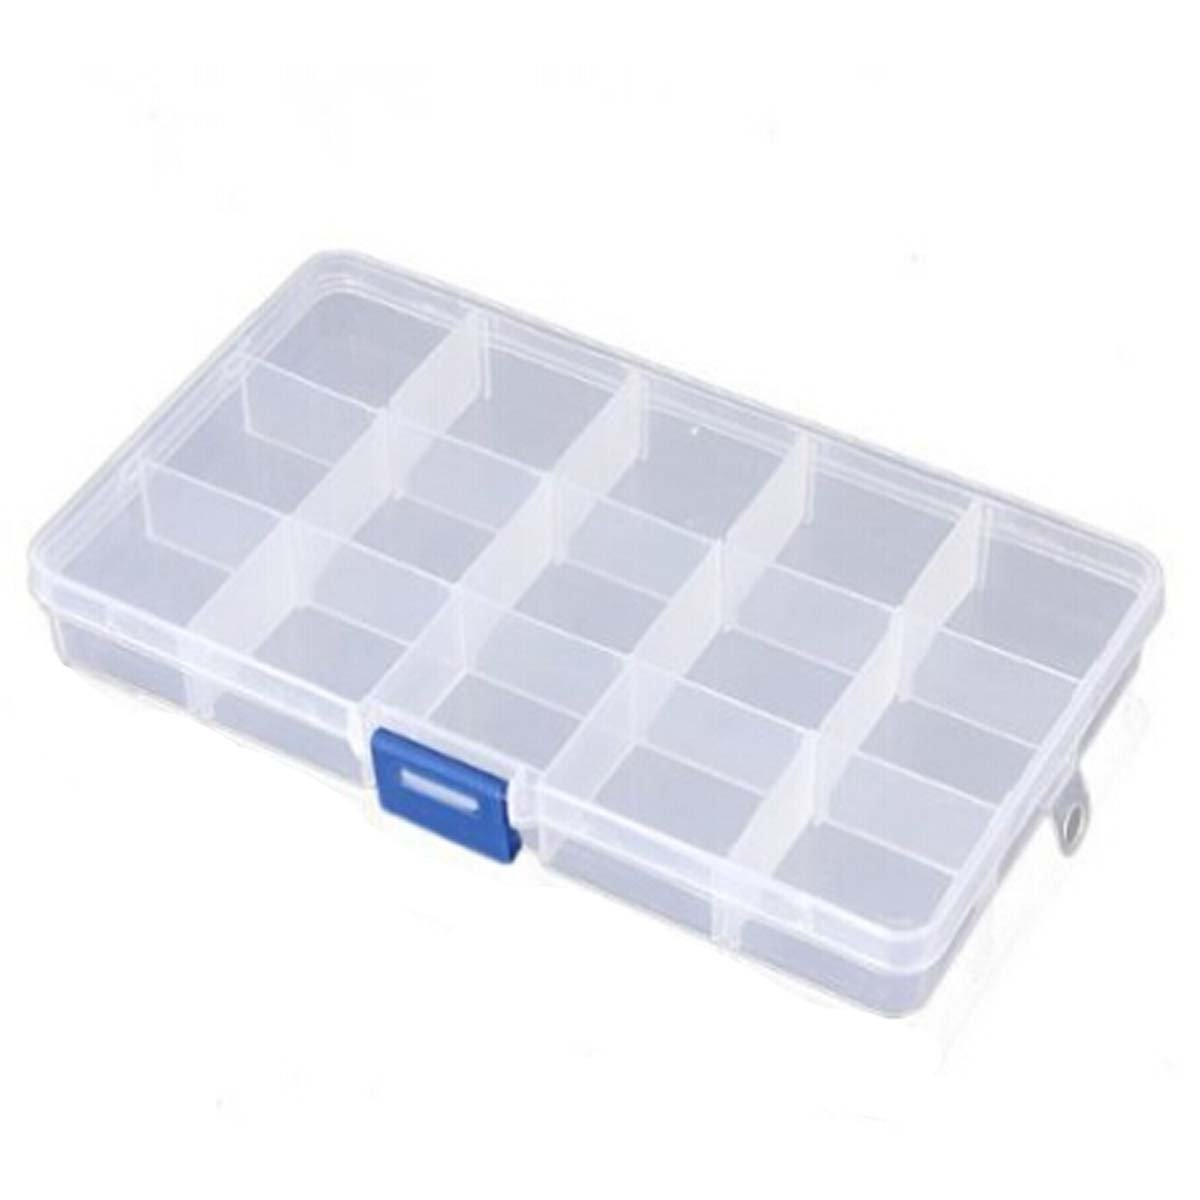 15 Grid Clear Adjustable Jewelry Bead Organizer Box Storage Container Case Amazon.co.uk Kitchen u0026 Home  sc 1 st  Amazon UK & 15 Grid Clear Adjustable Jewelry Bead Organizer Box Storage ...